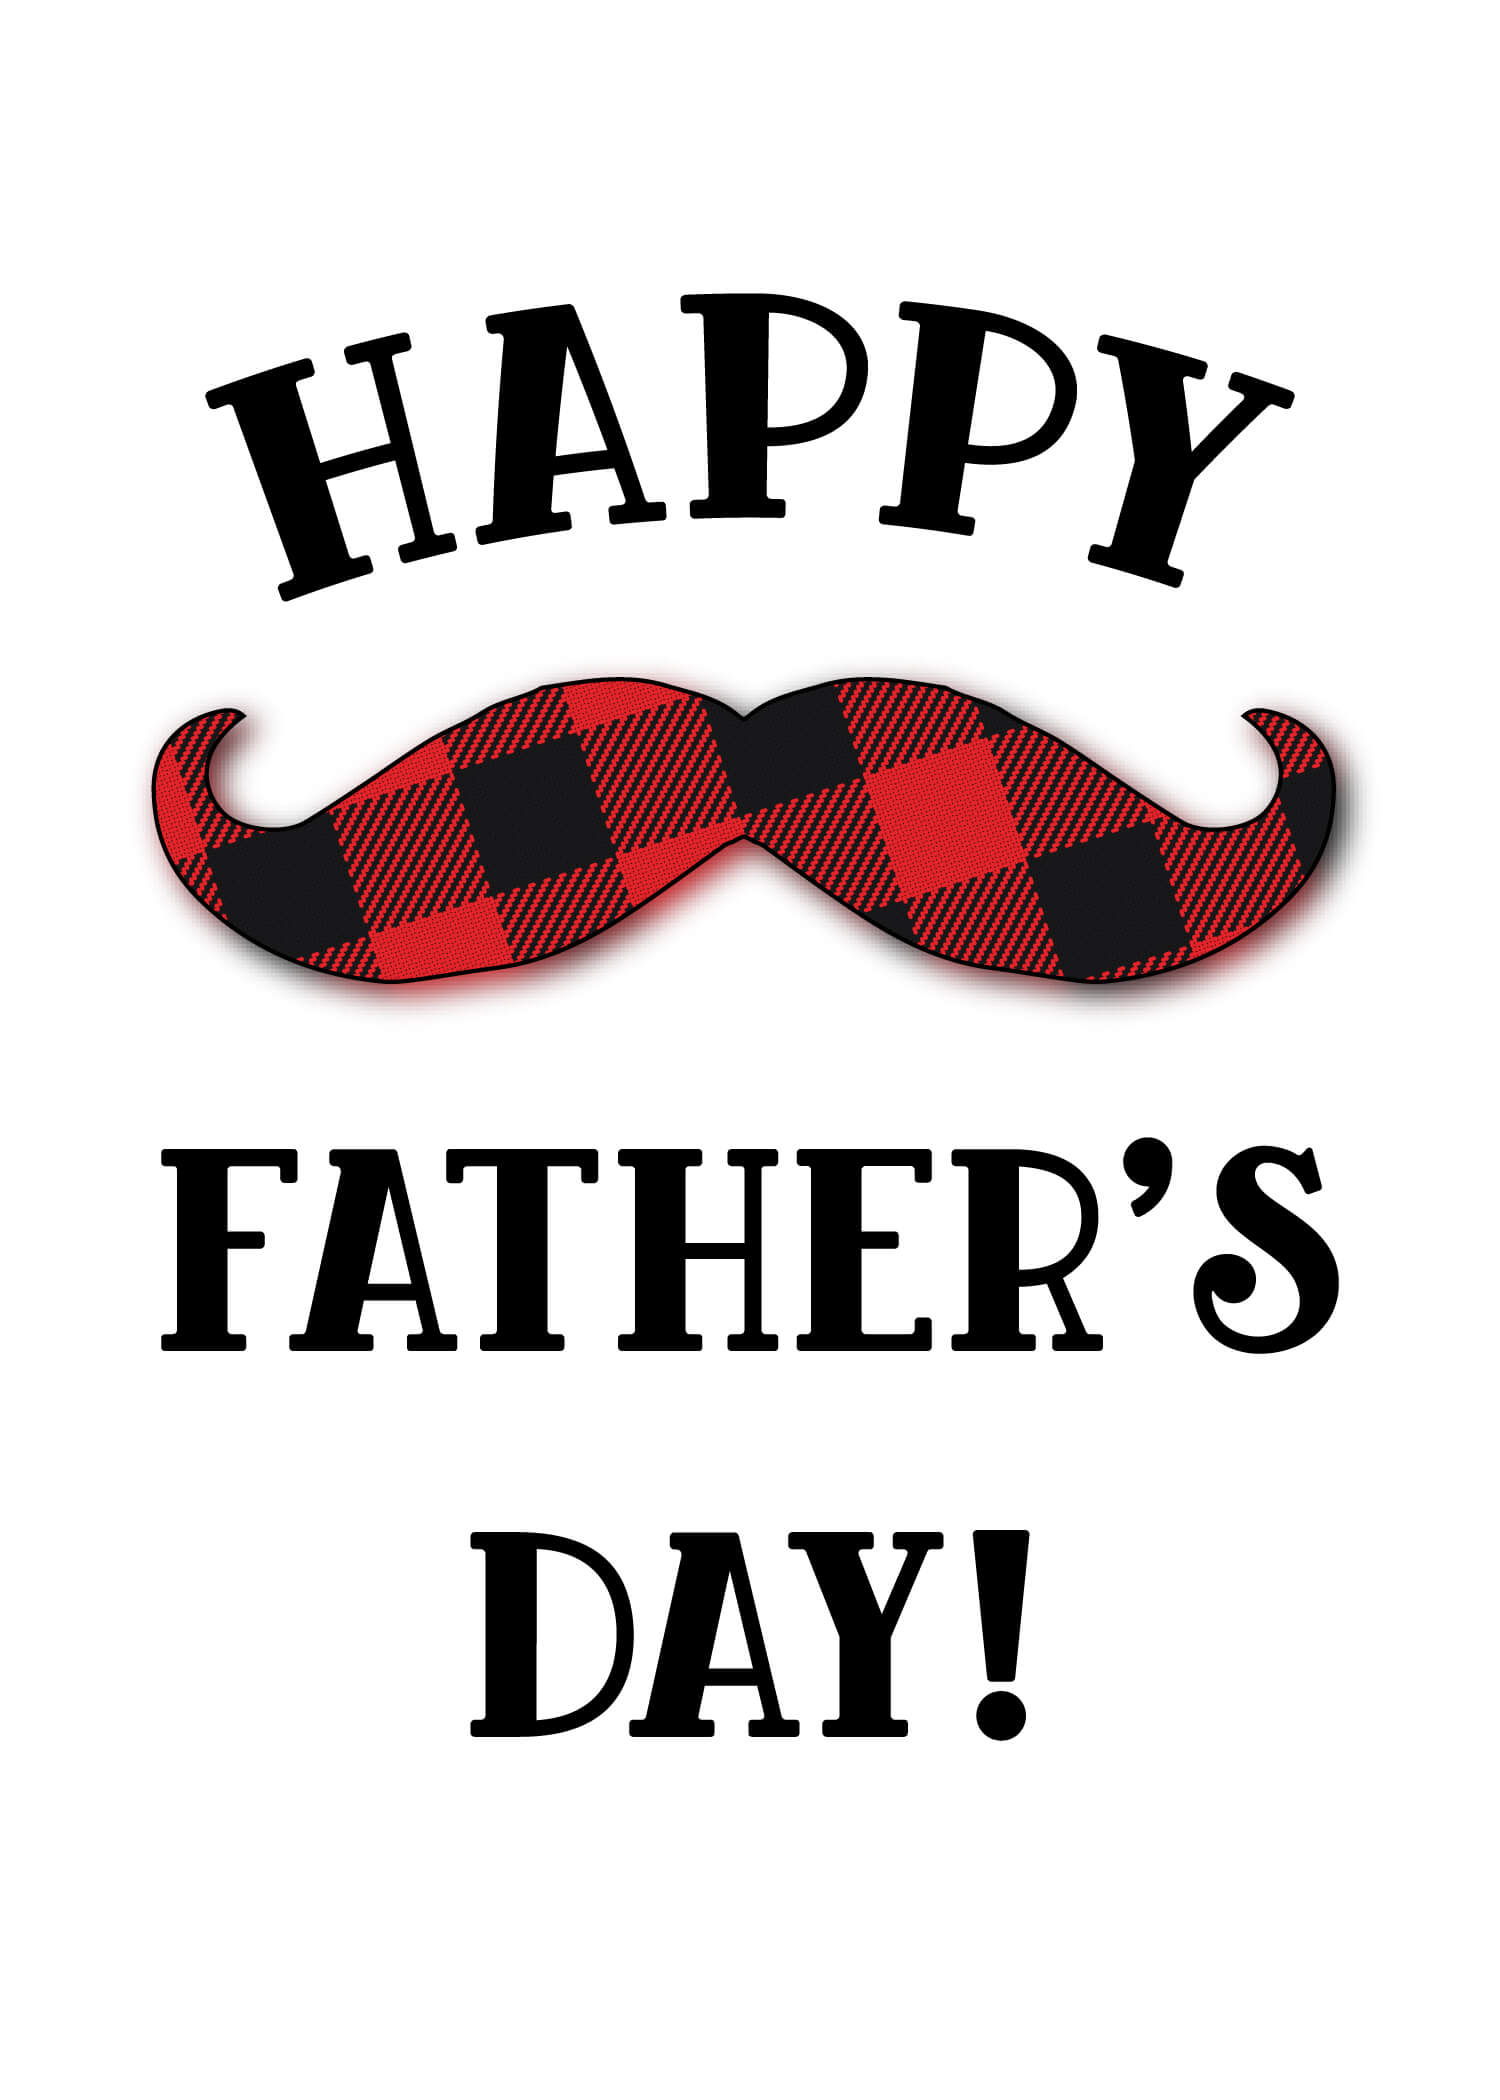 image relating to Father's Day Printable Cards titled Fathers Working day Card - Totally free Printable